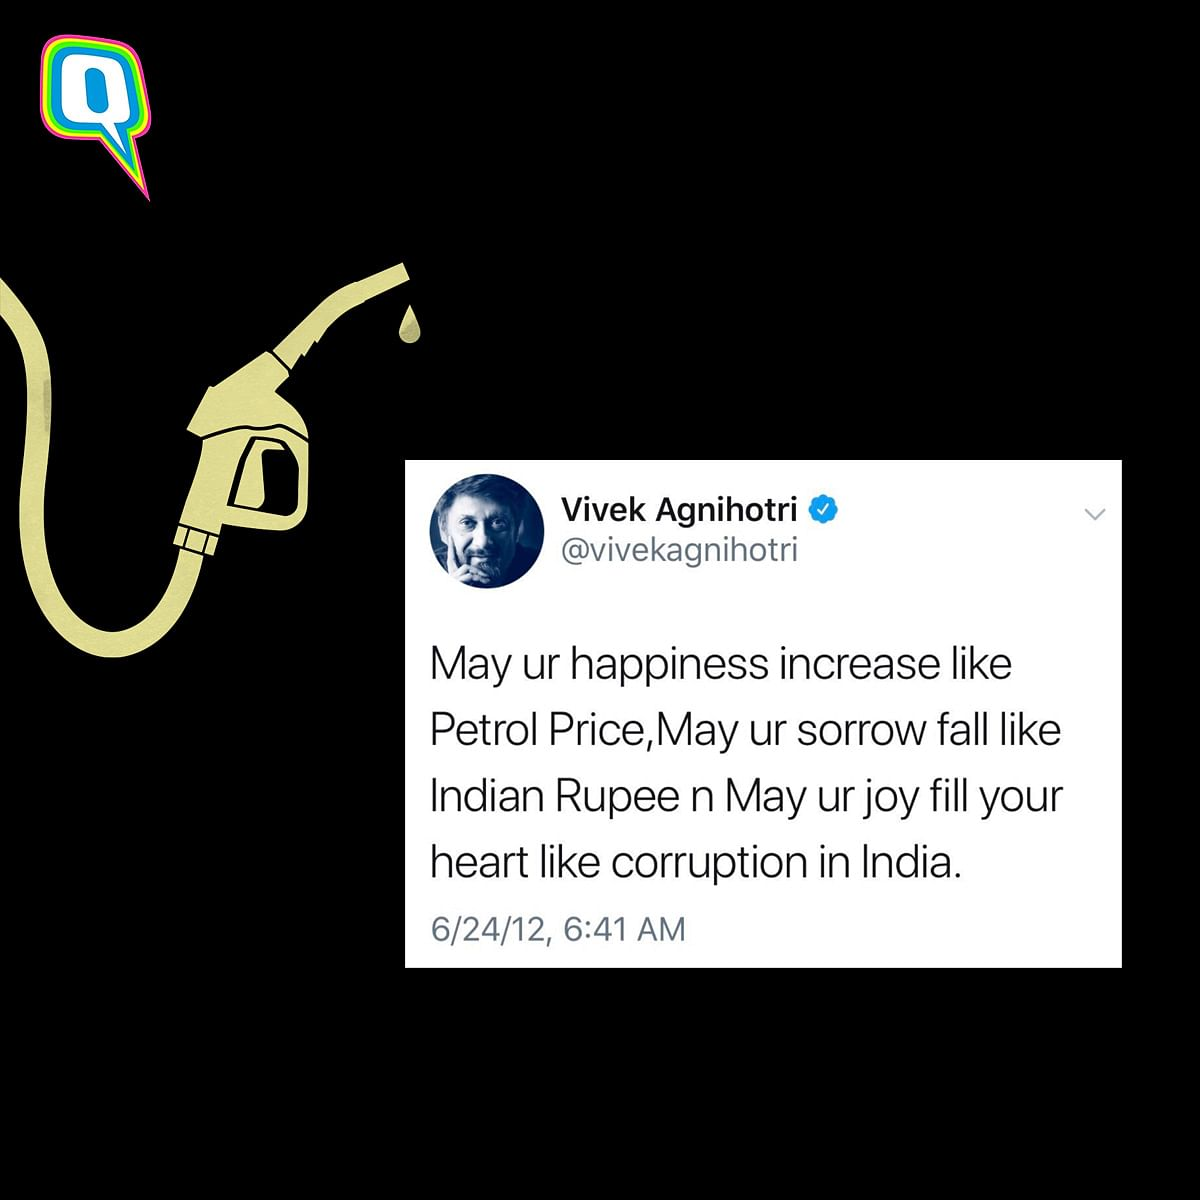 There Was a Time When Akshay, Bachchan Cared About Fuel Prices